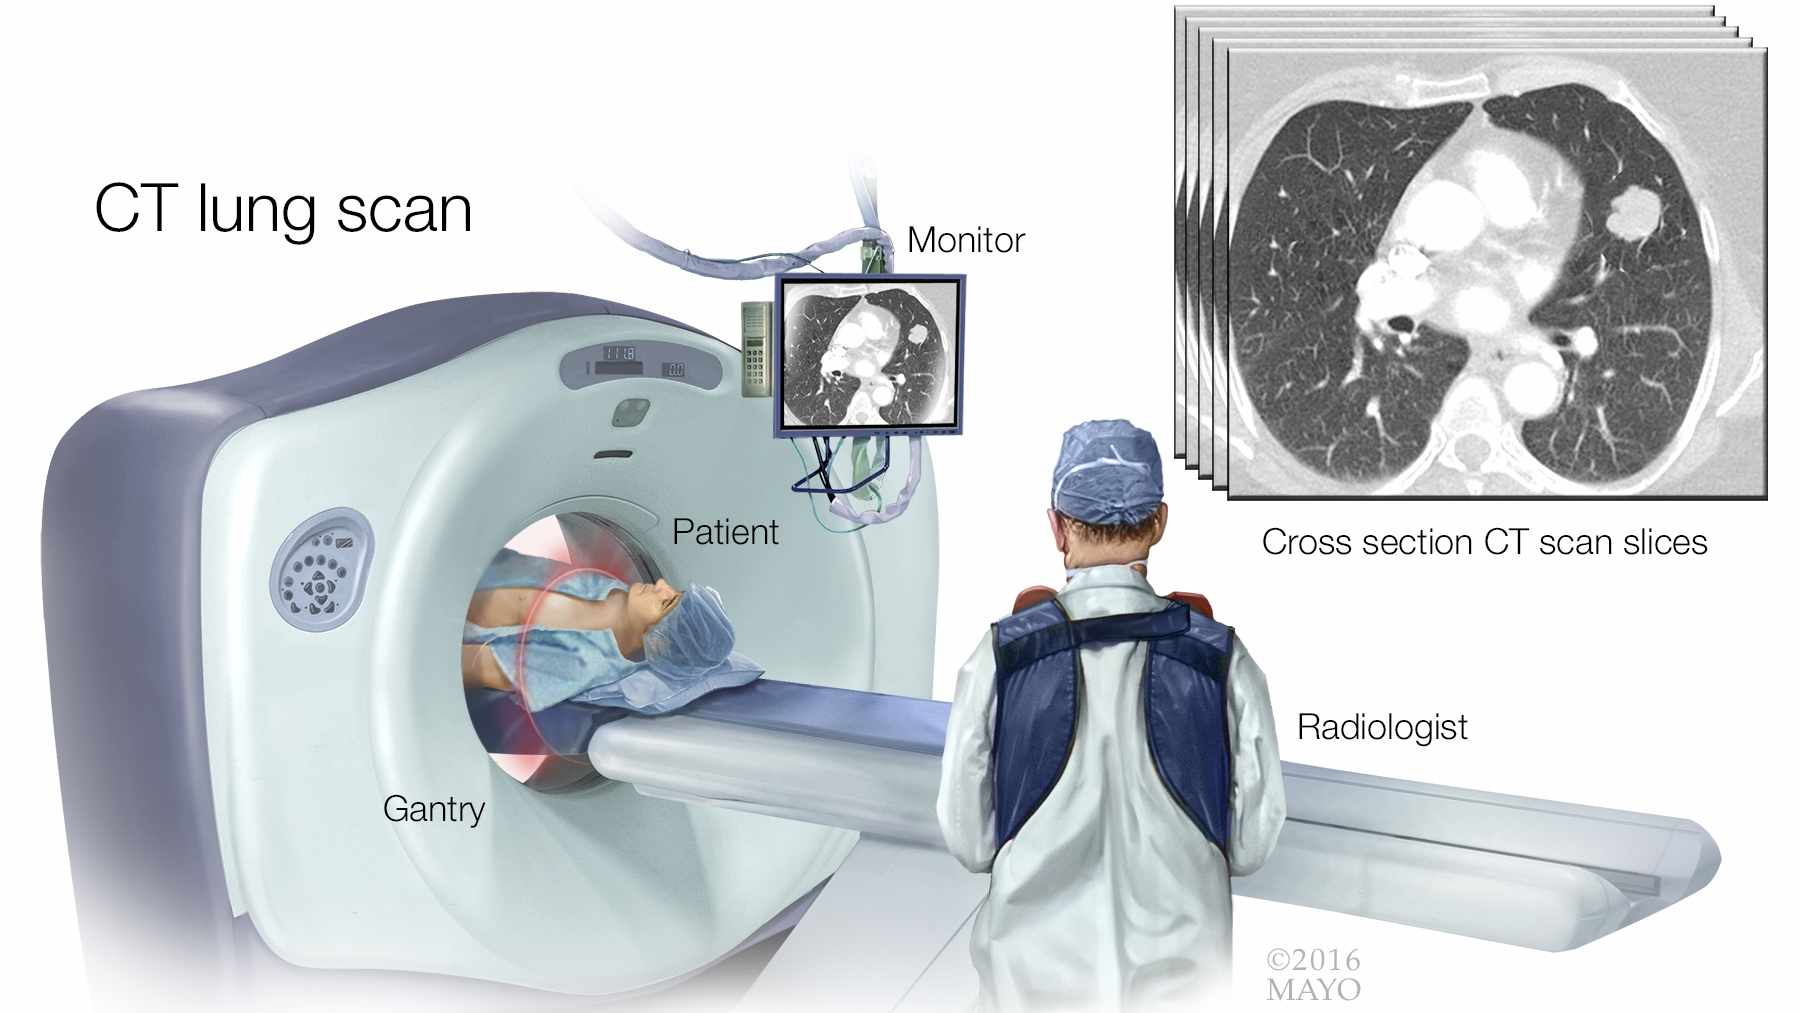 medical illustration of CT lung scan